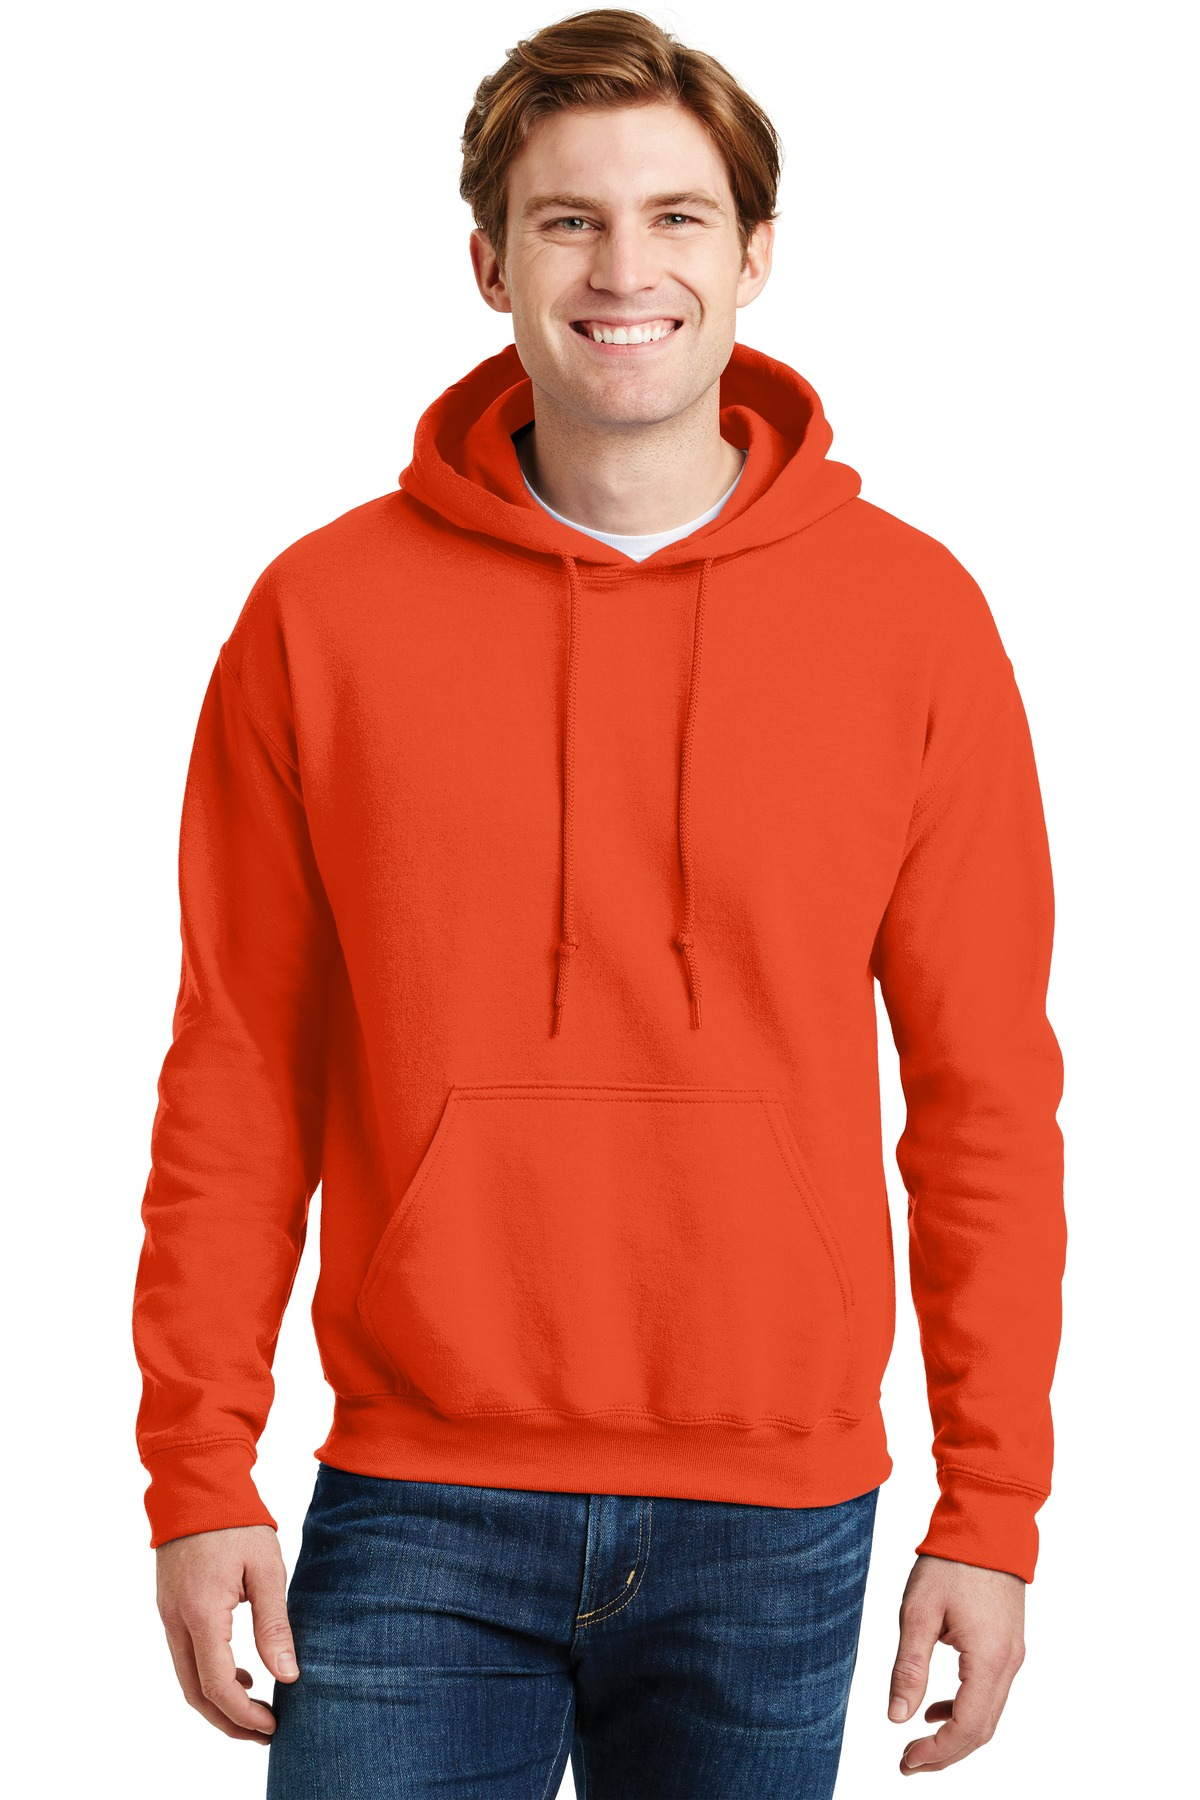 Gildan ®  - DryBlend ®  Pullover Hooded Sweatshirt.  12500 - Orange